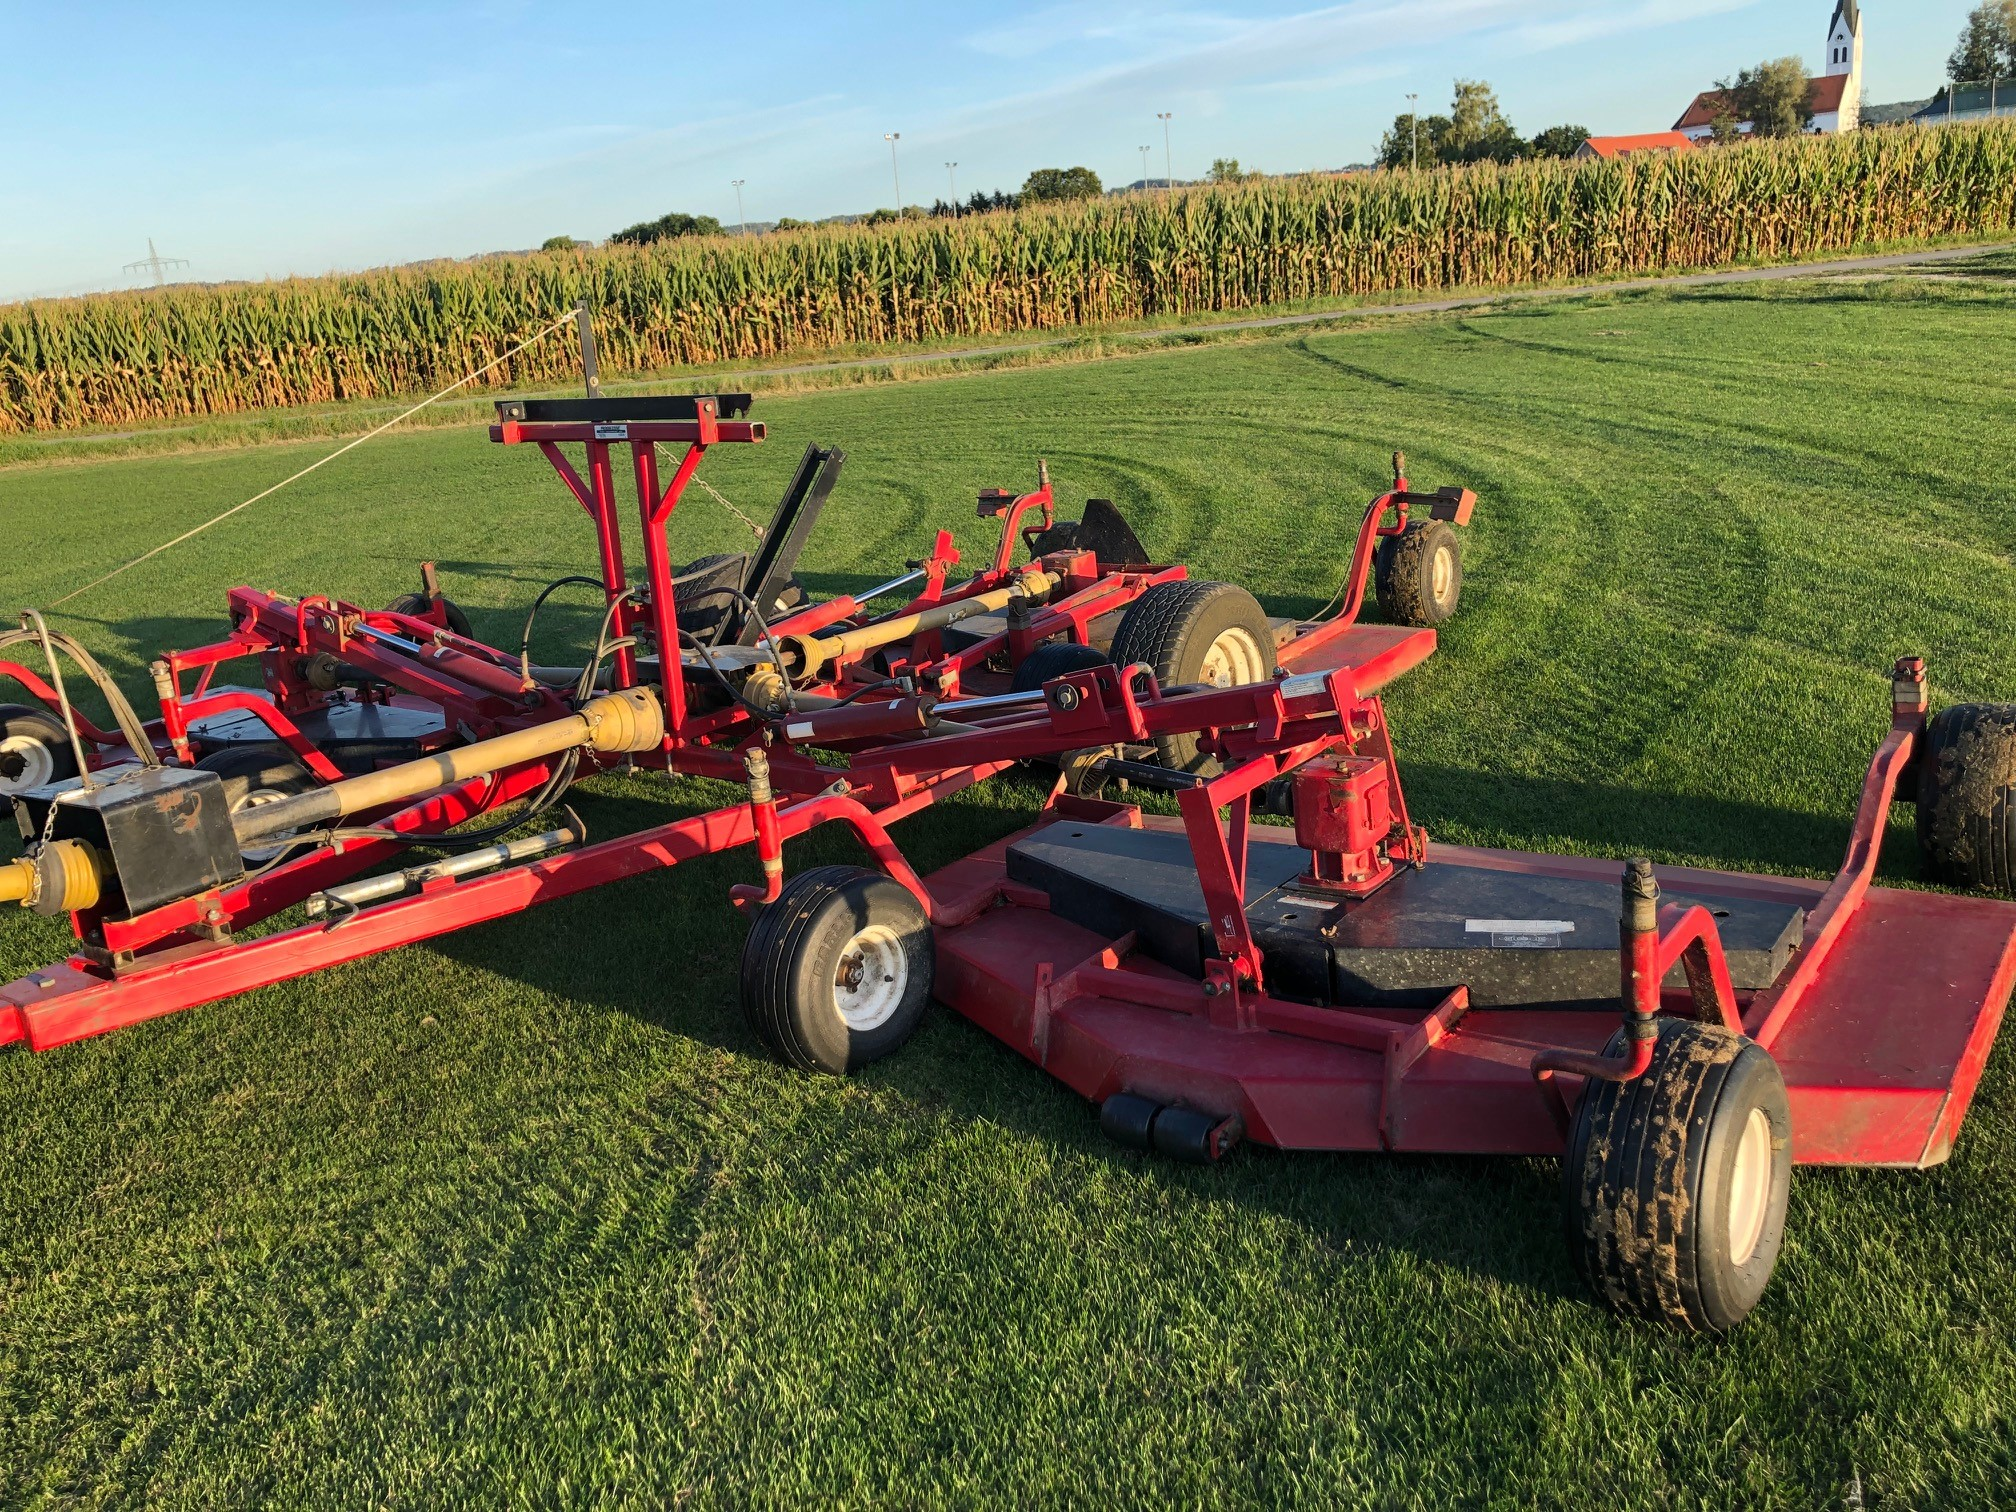 Progressive TD92 Tri Deck Mower for sale